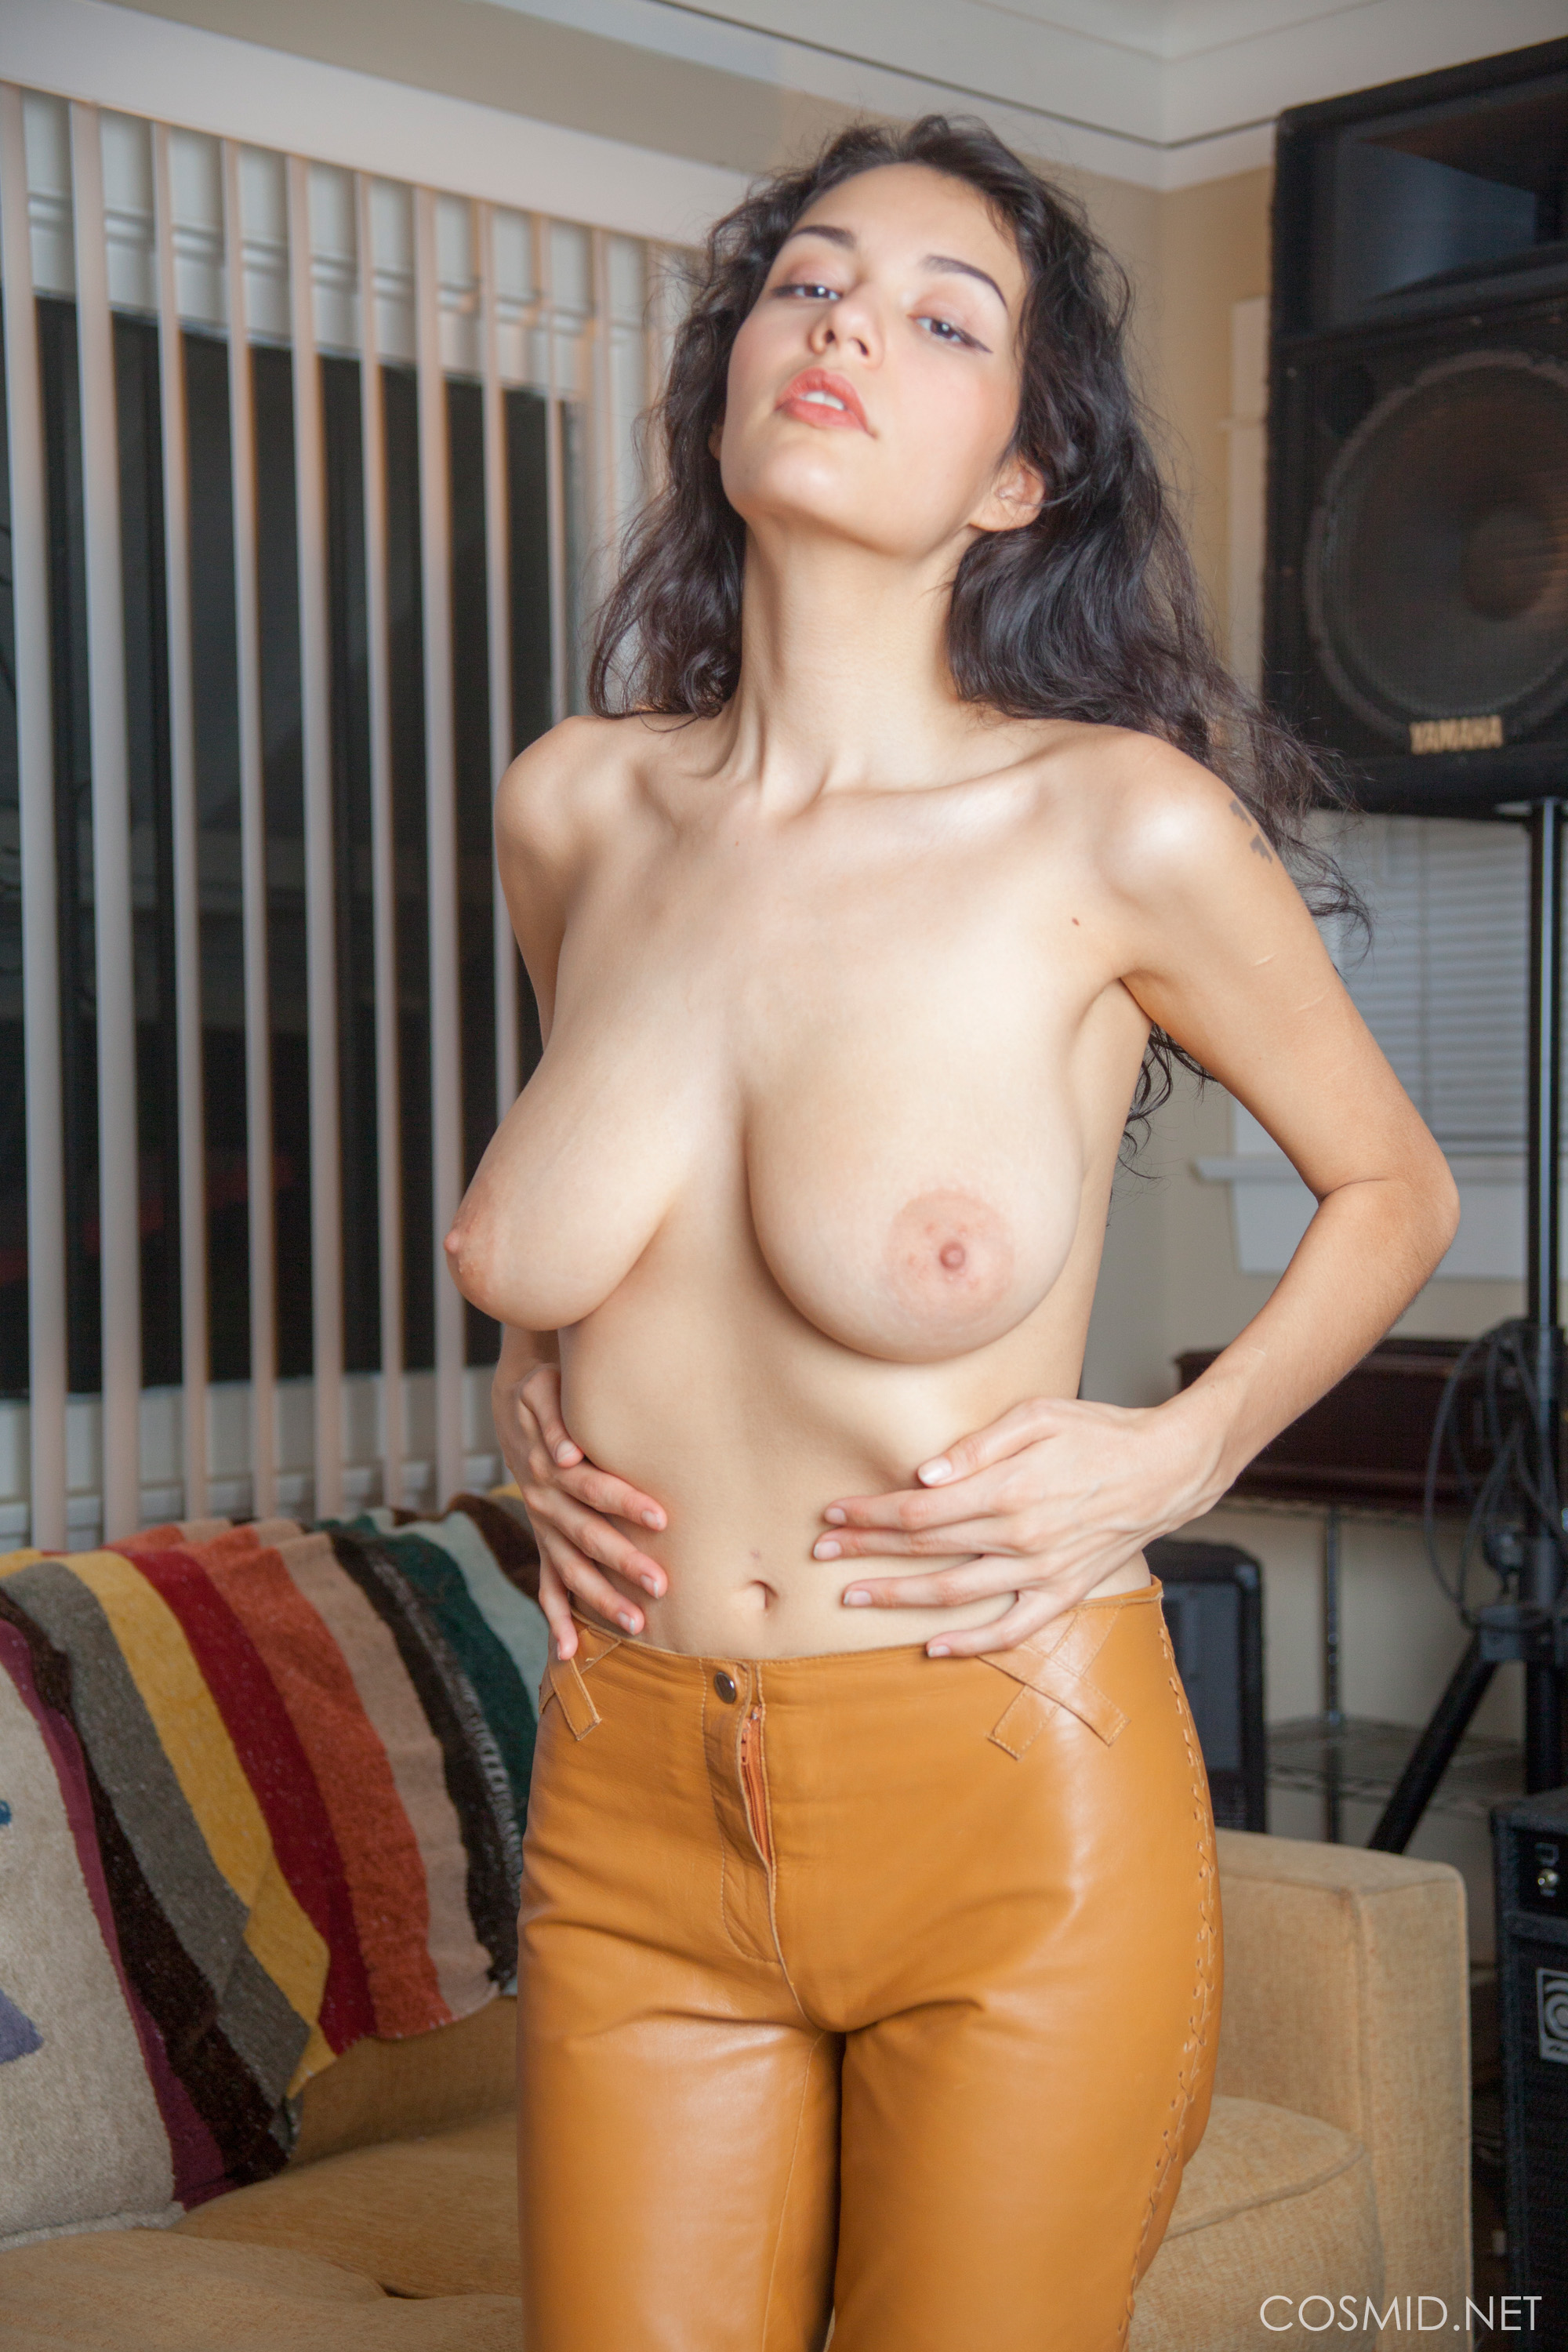 new cosmid model in wonderful leather trousers modelling her marvelous tits #6